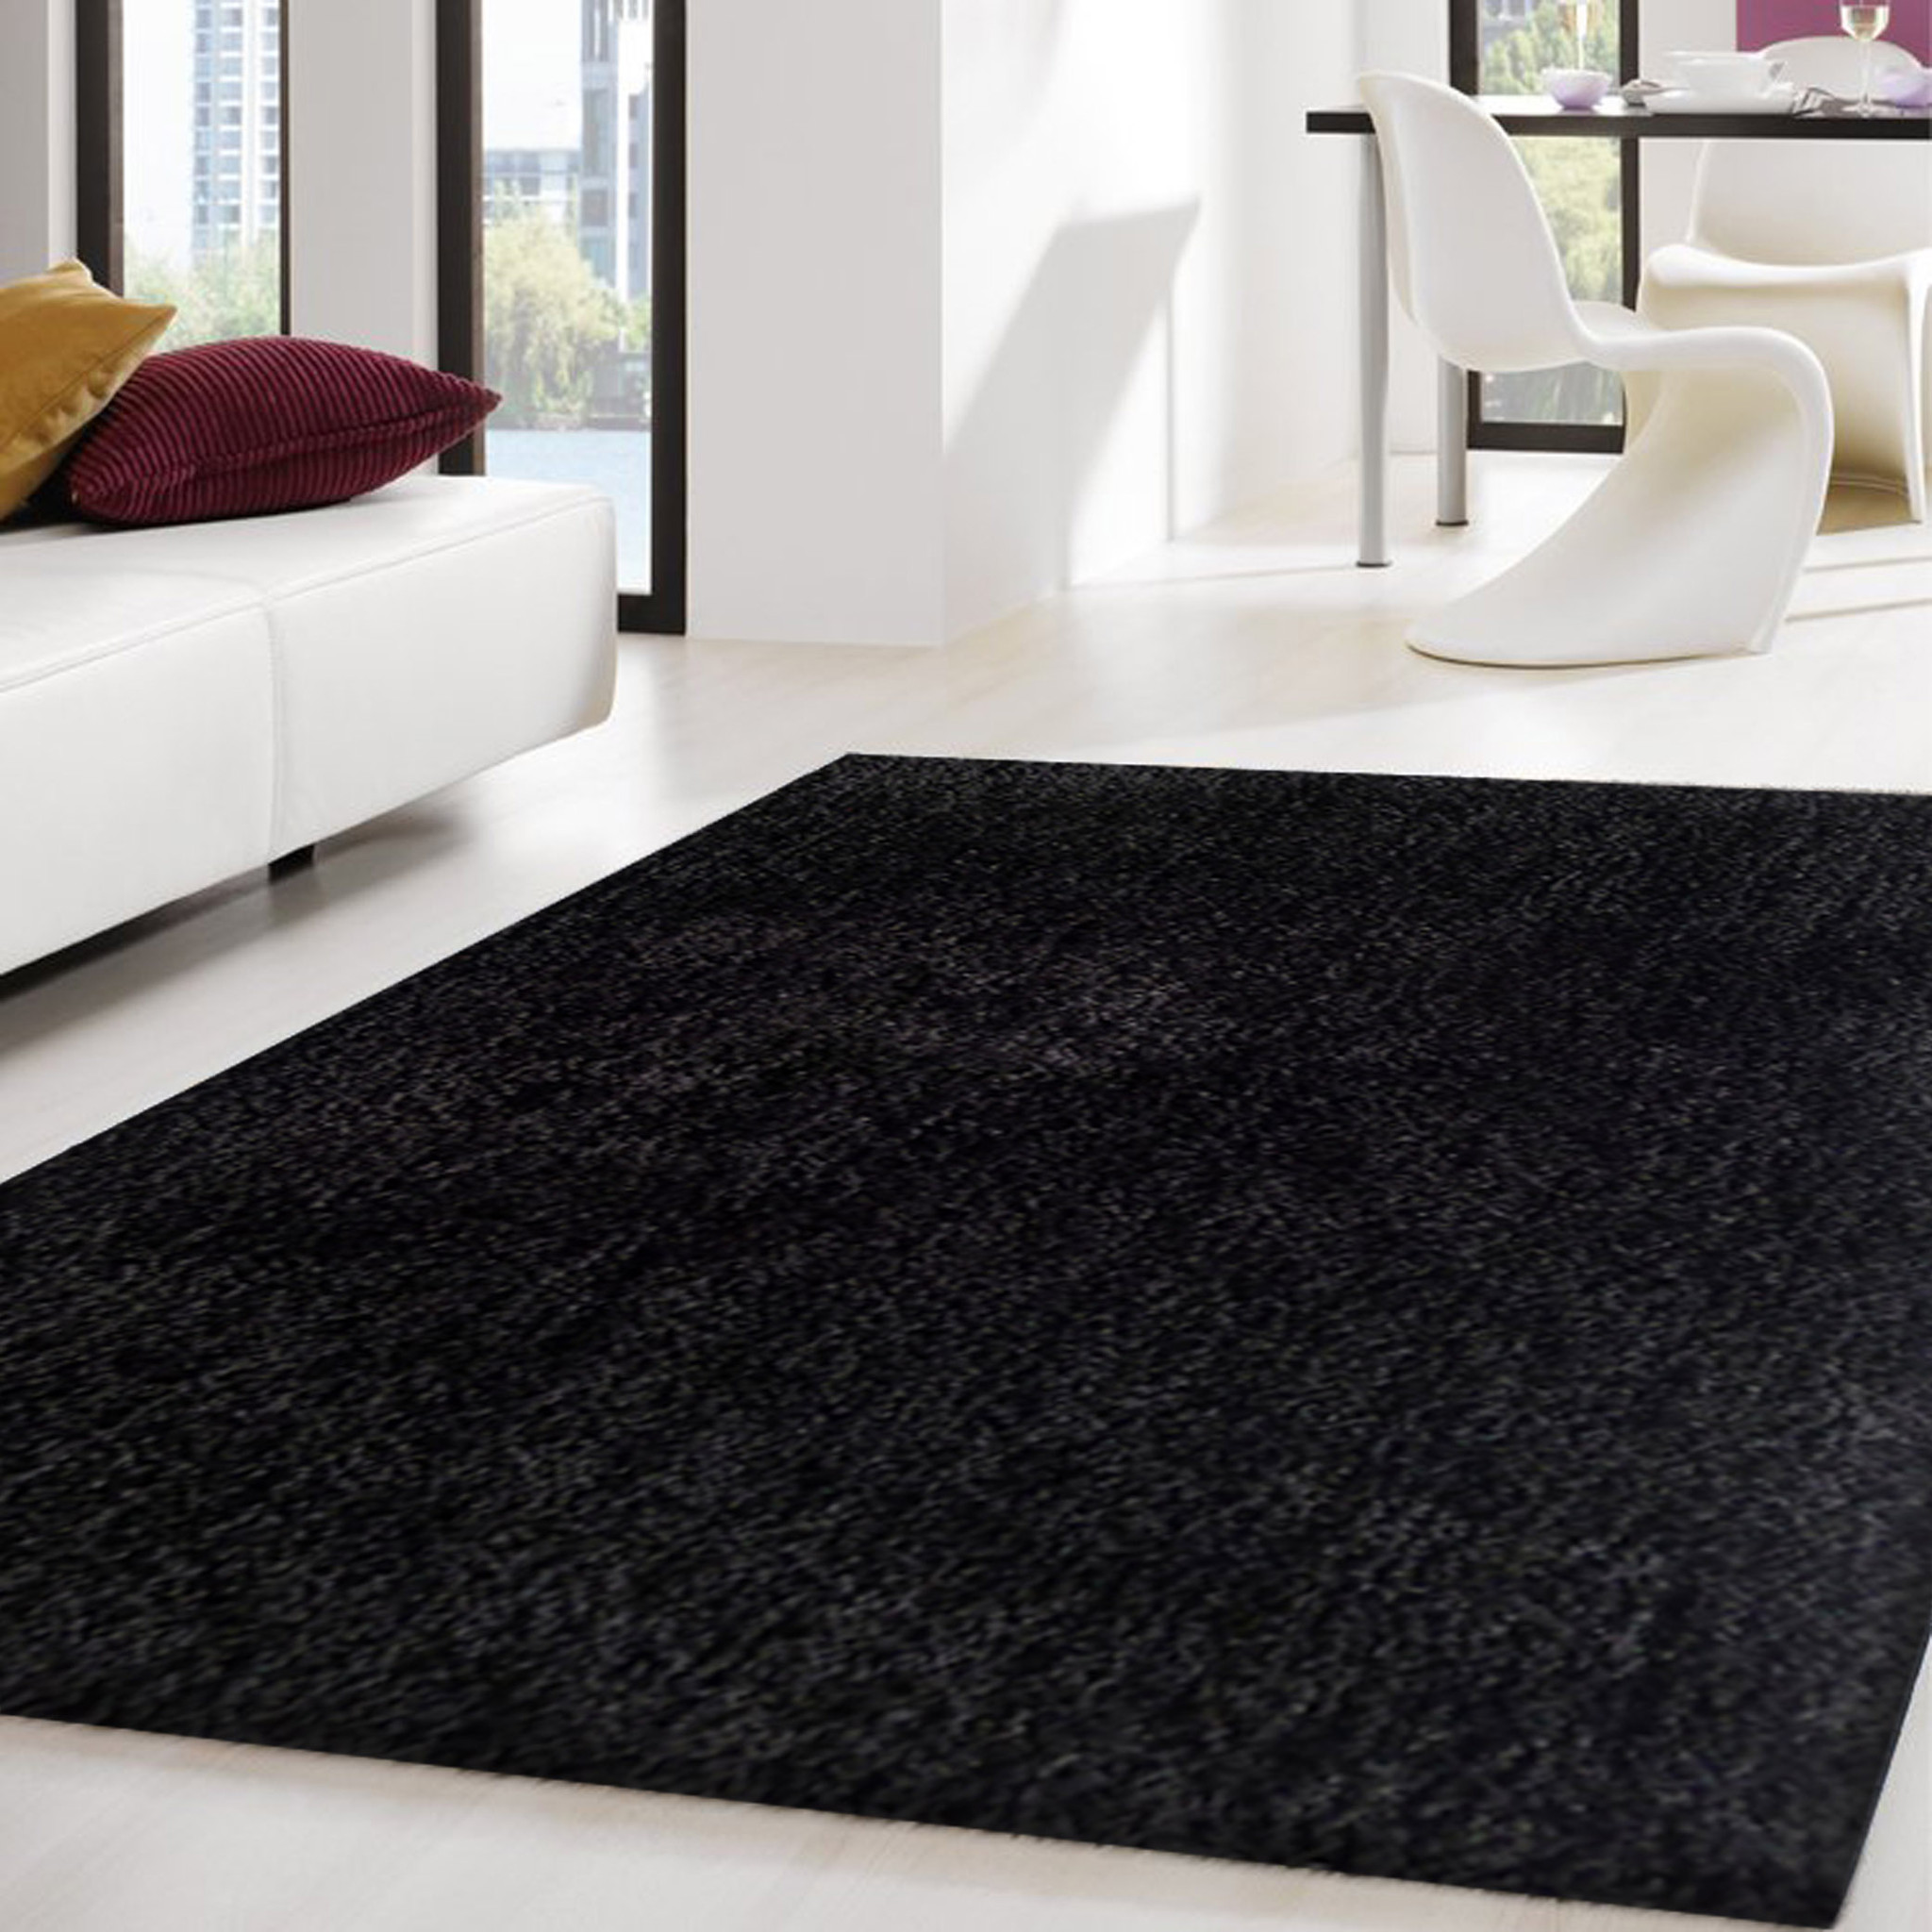 Trending 2-Piece Set | Solid Black Thick Plush Shag Area Rug with Rug Pad thick plush area rugs